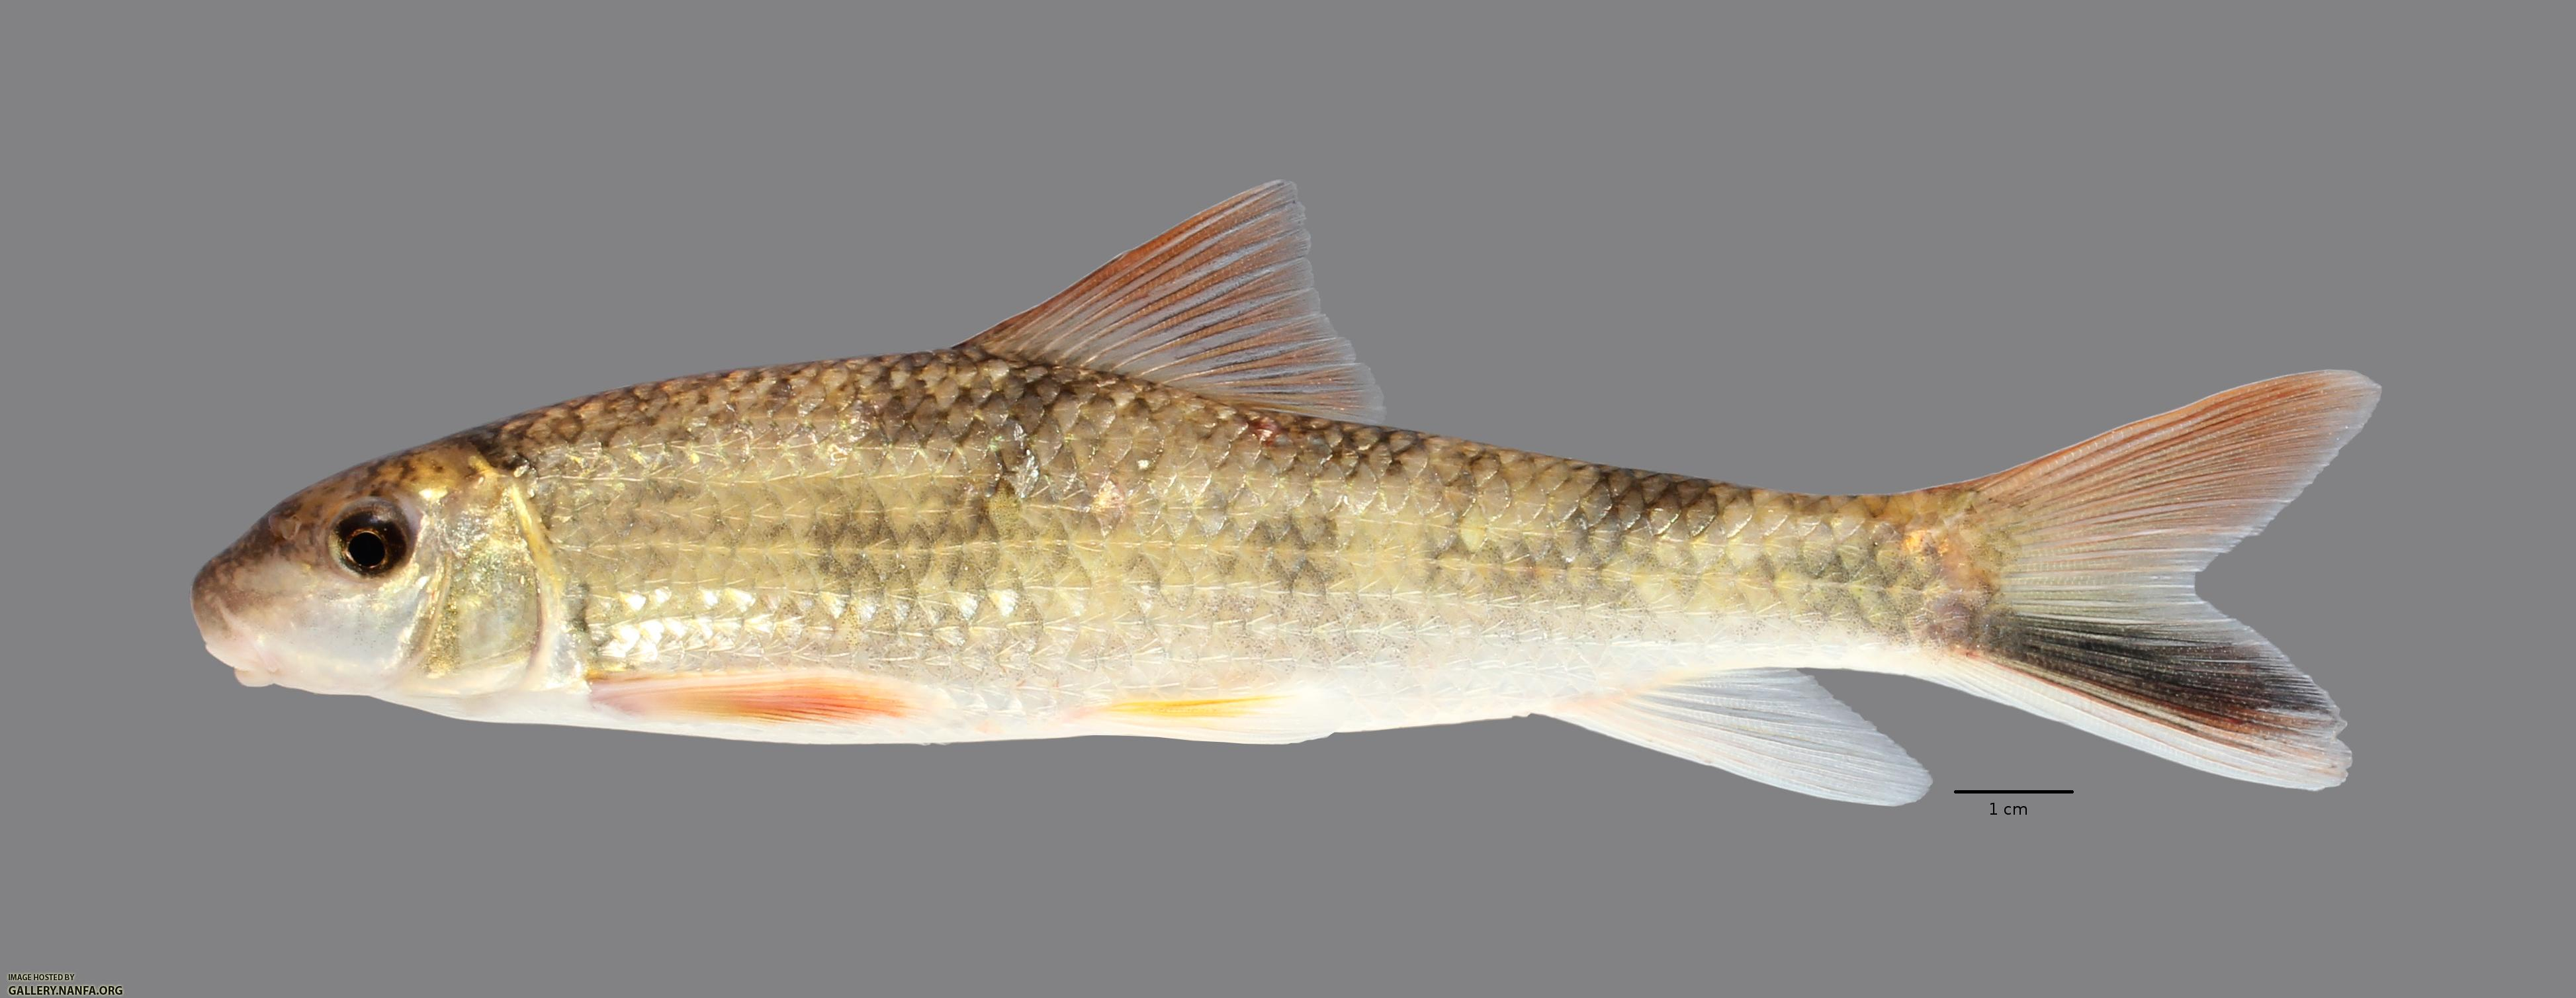 Moxostoma poecilurum Blacktail Redhorse2556ws